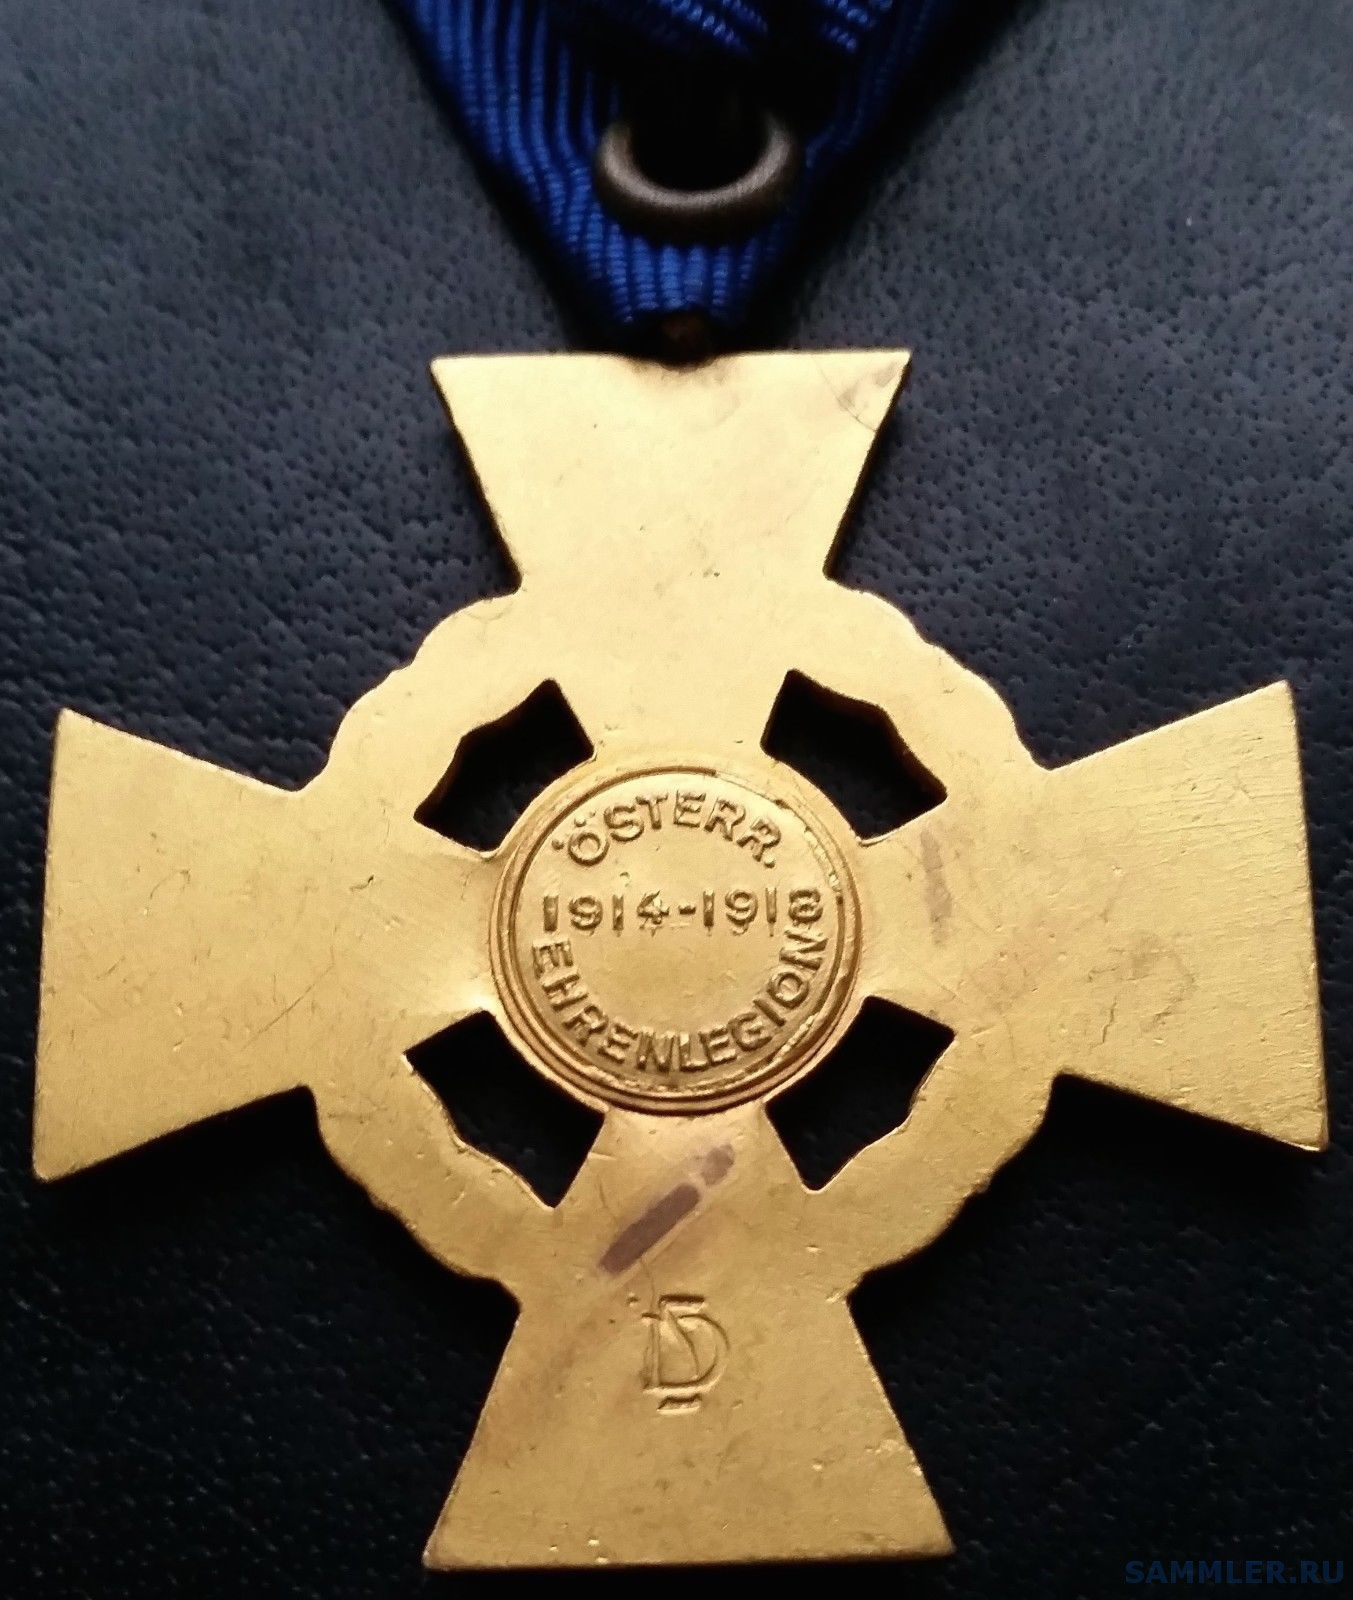 7332-Commemorative-Cross-of-the-Austrian-Legion-of-_57 (1).jpg